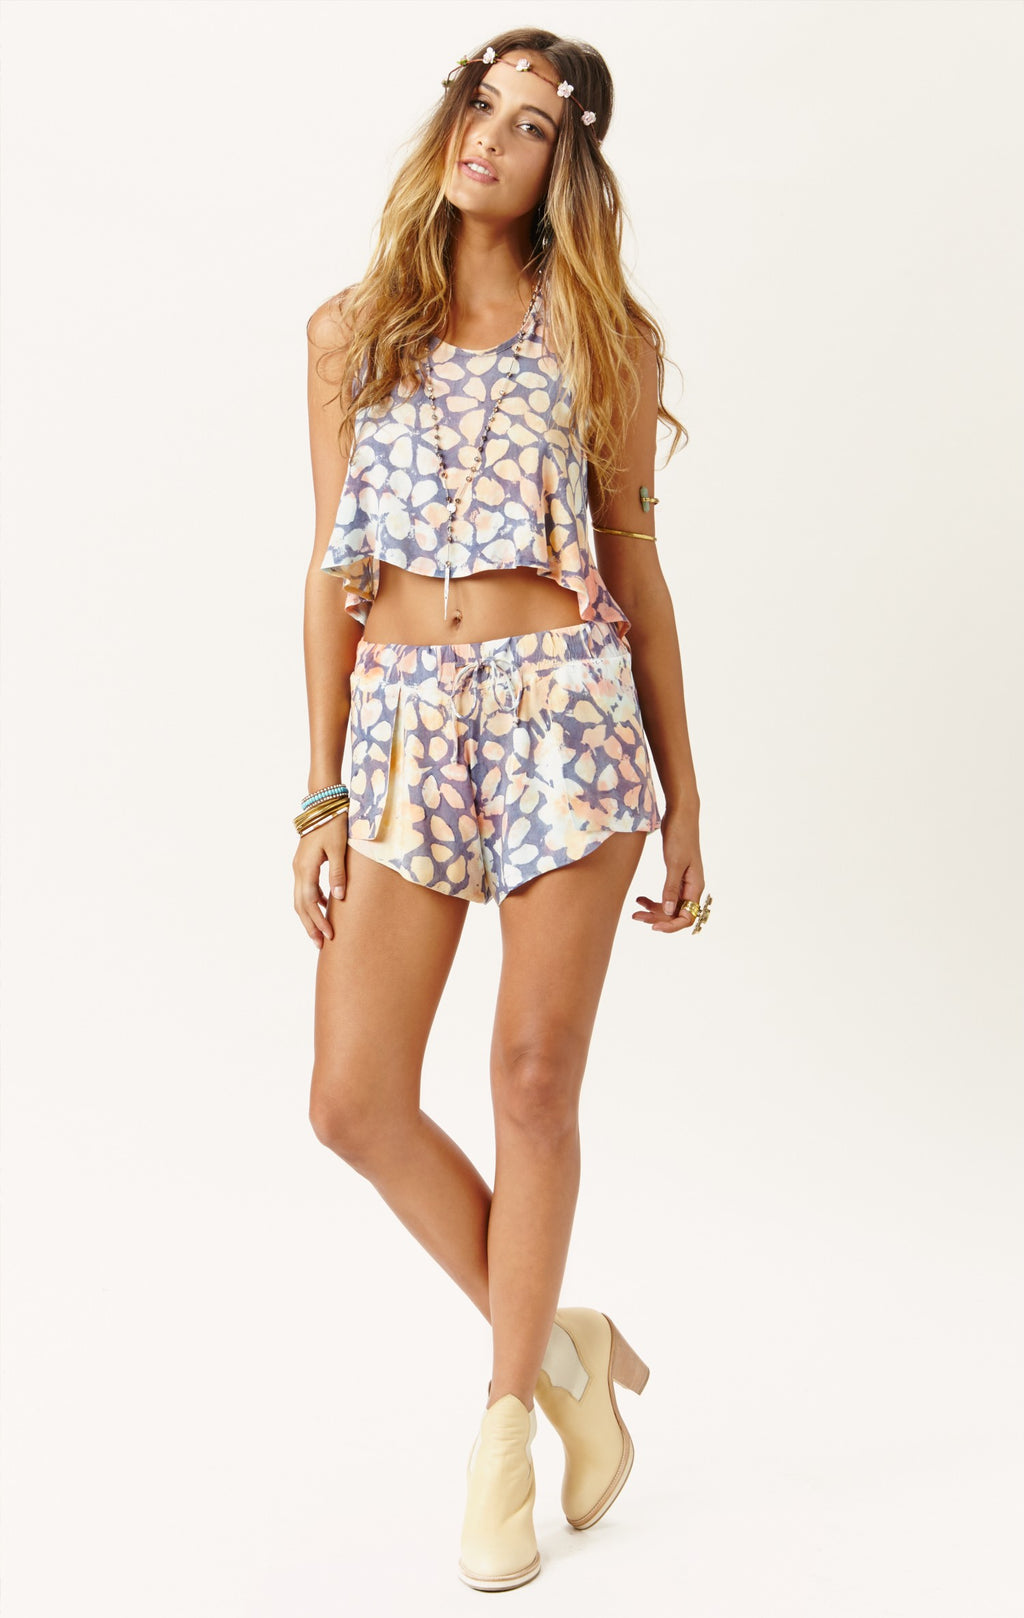 Overlapped Shorts